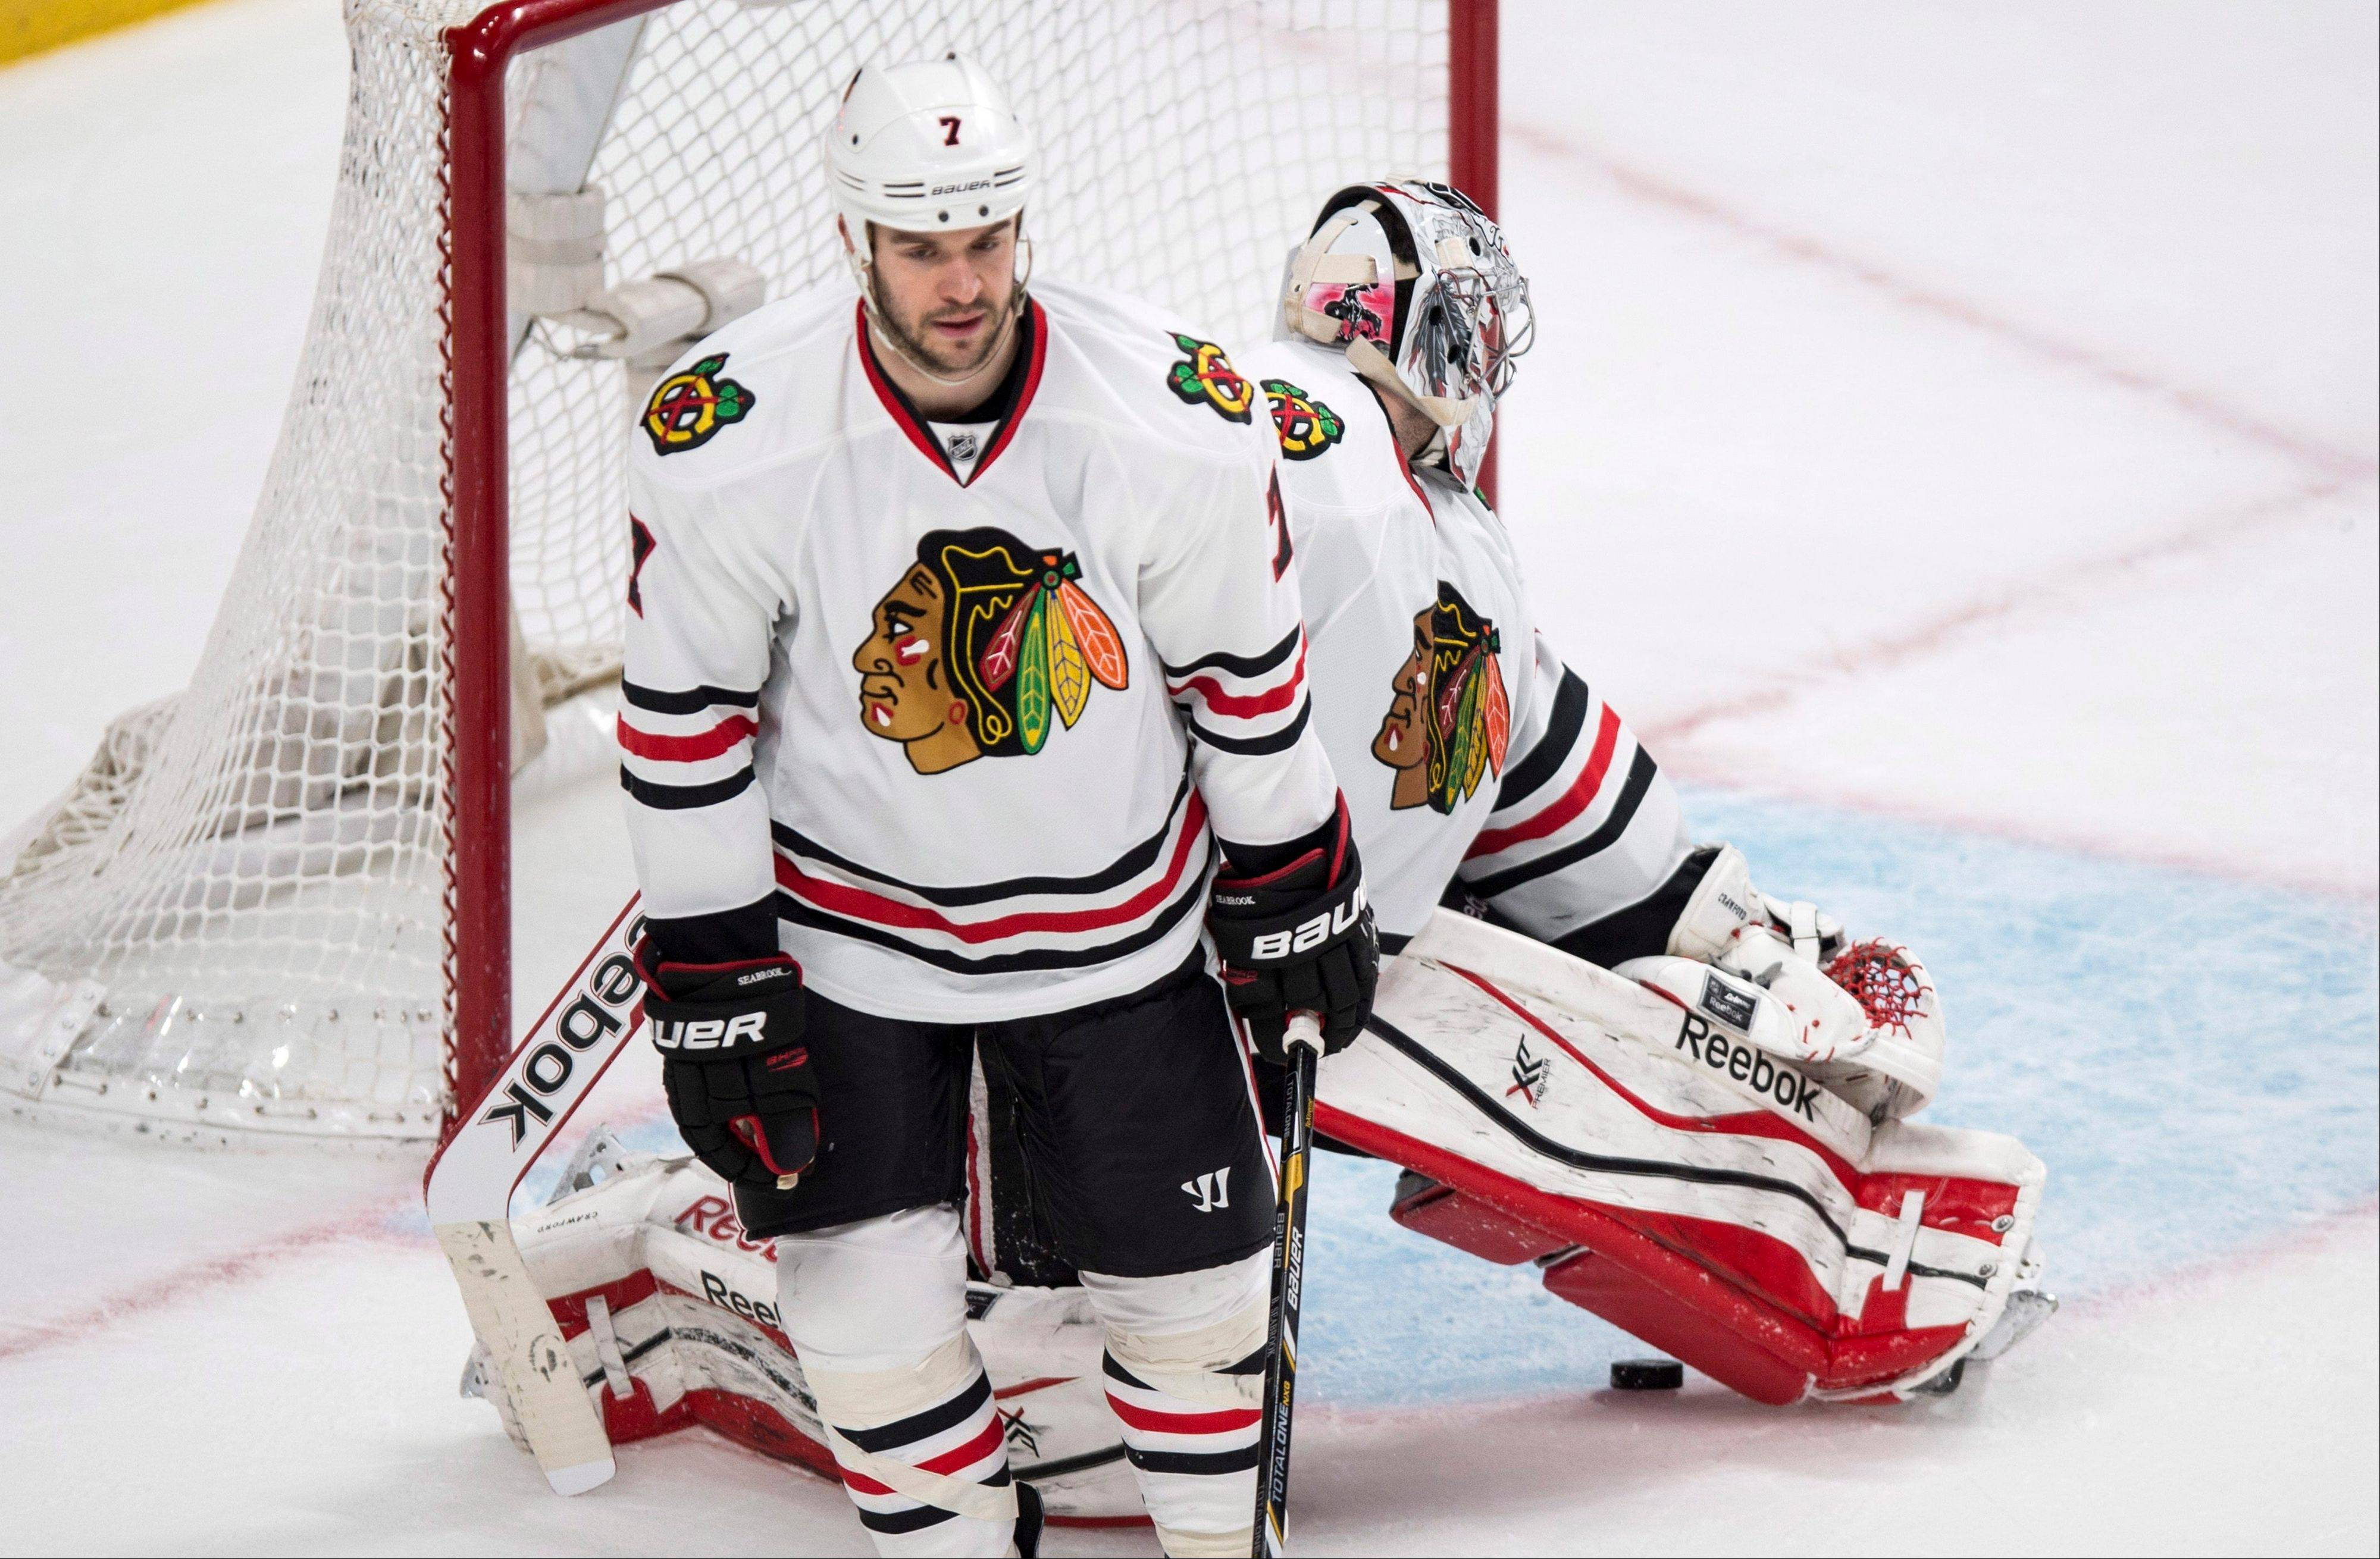 Brent Seabrook and Corey Crawford react following a goal by Montreal's Andrei Markov during an overtime loss last week. The Hawks are 4-11 in overtimes and shootouts this season.